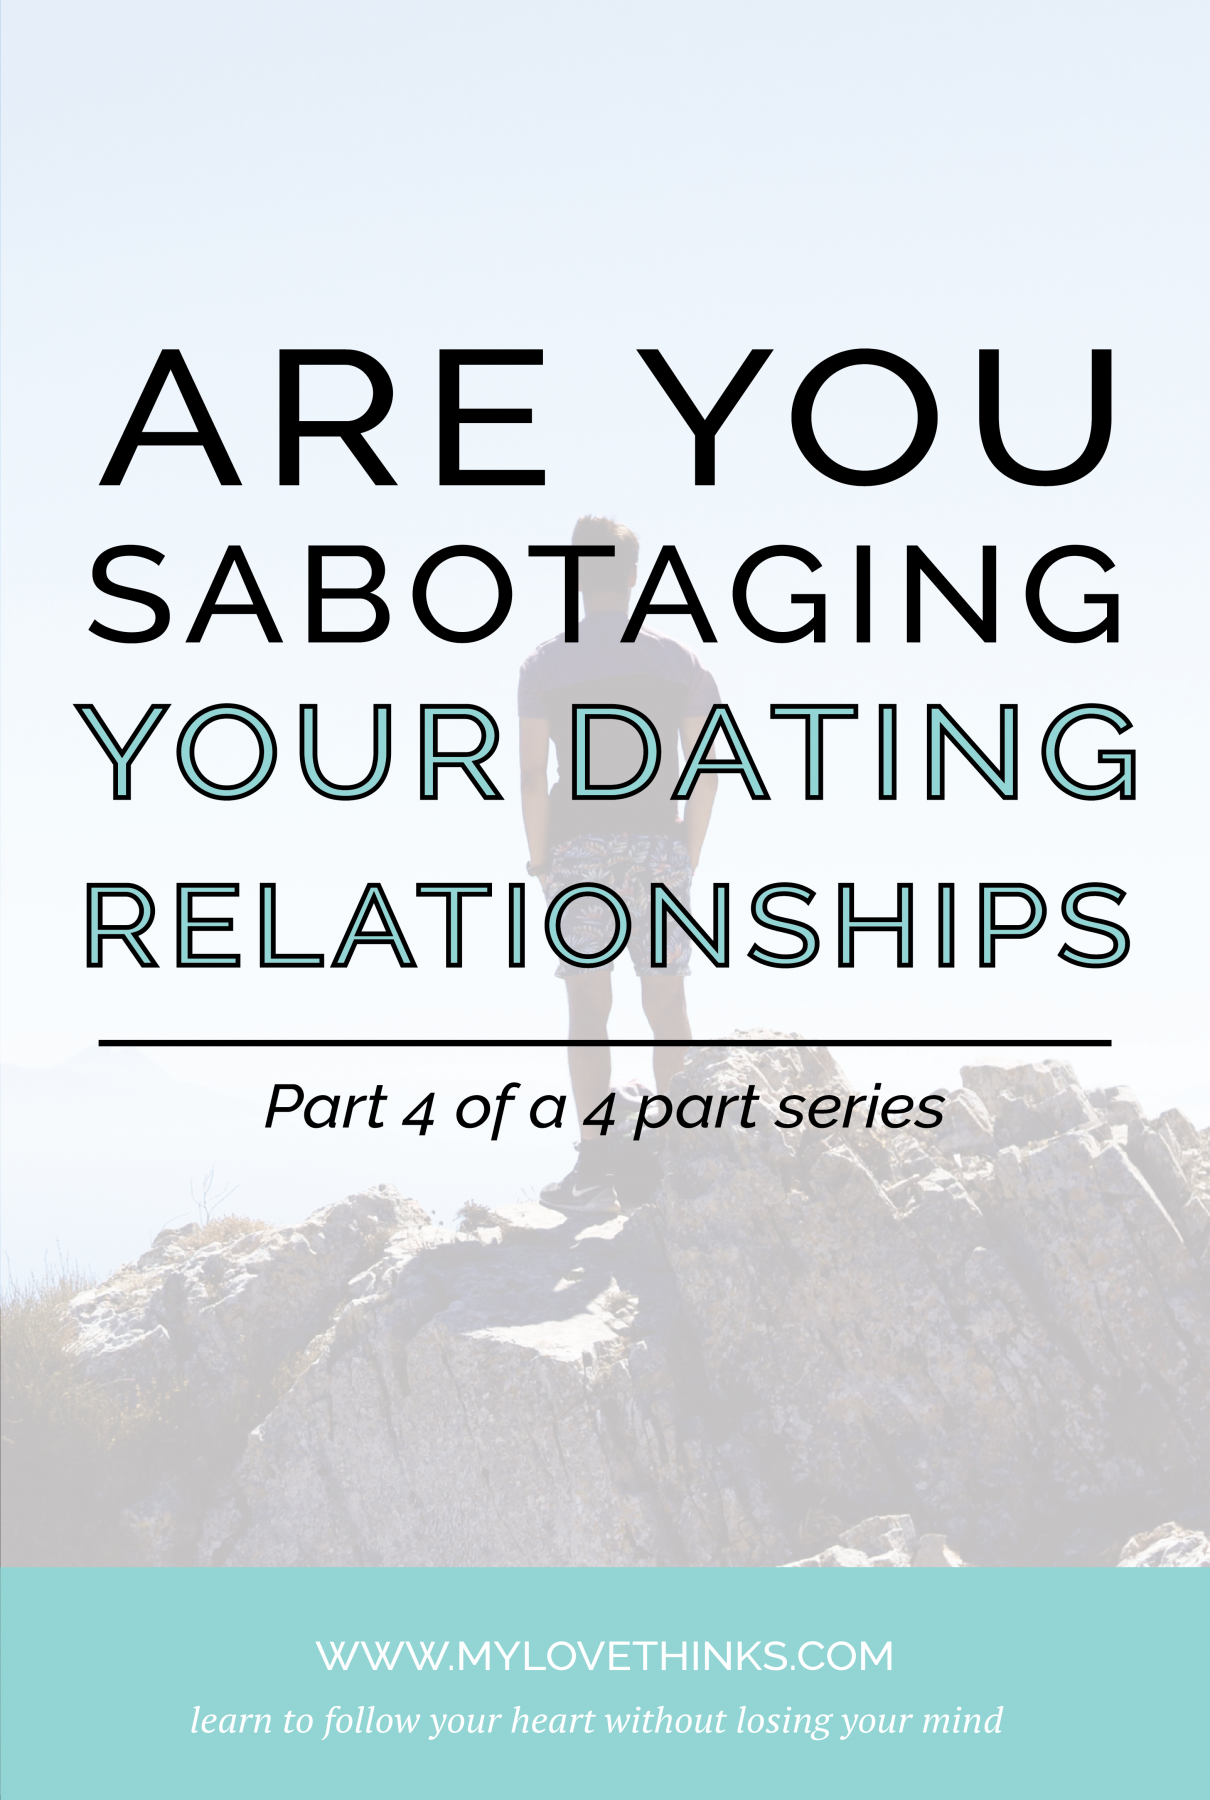 Sabotaging your relationships